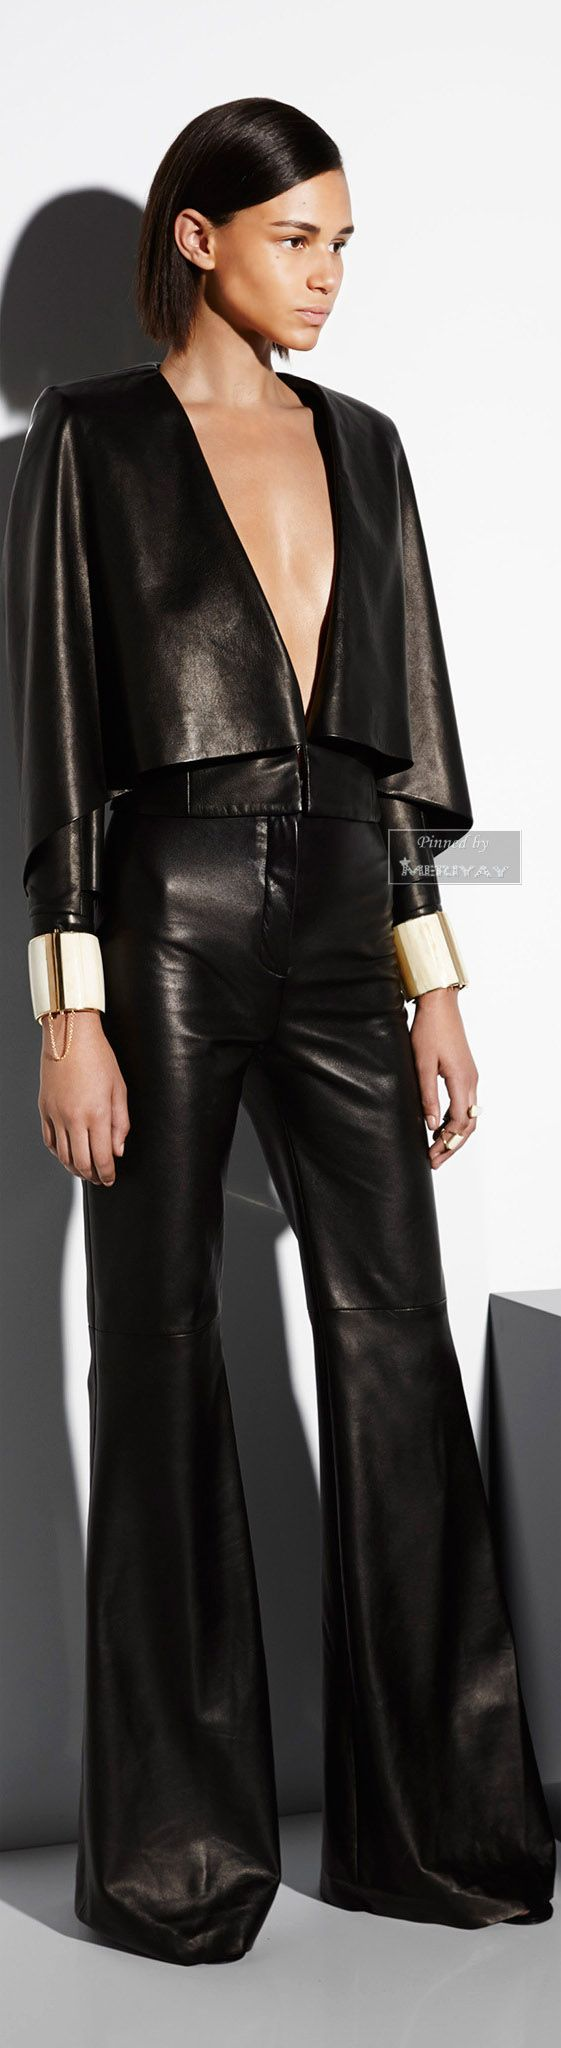 Balmain Resort 2015. Yumi dressed by Balmain on press: http://www.claireyumi.com/